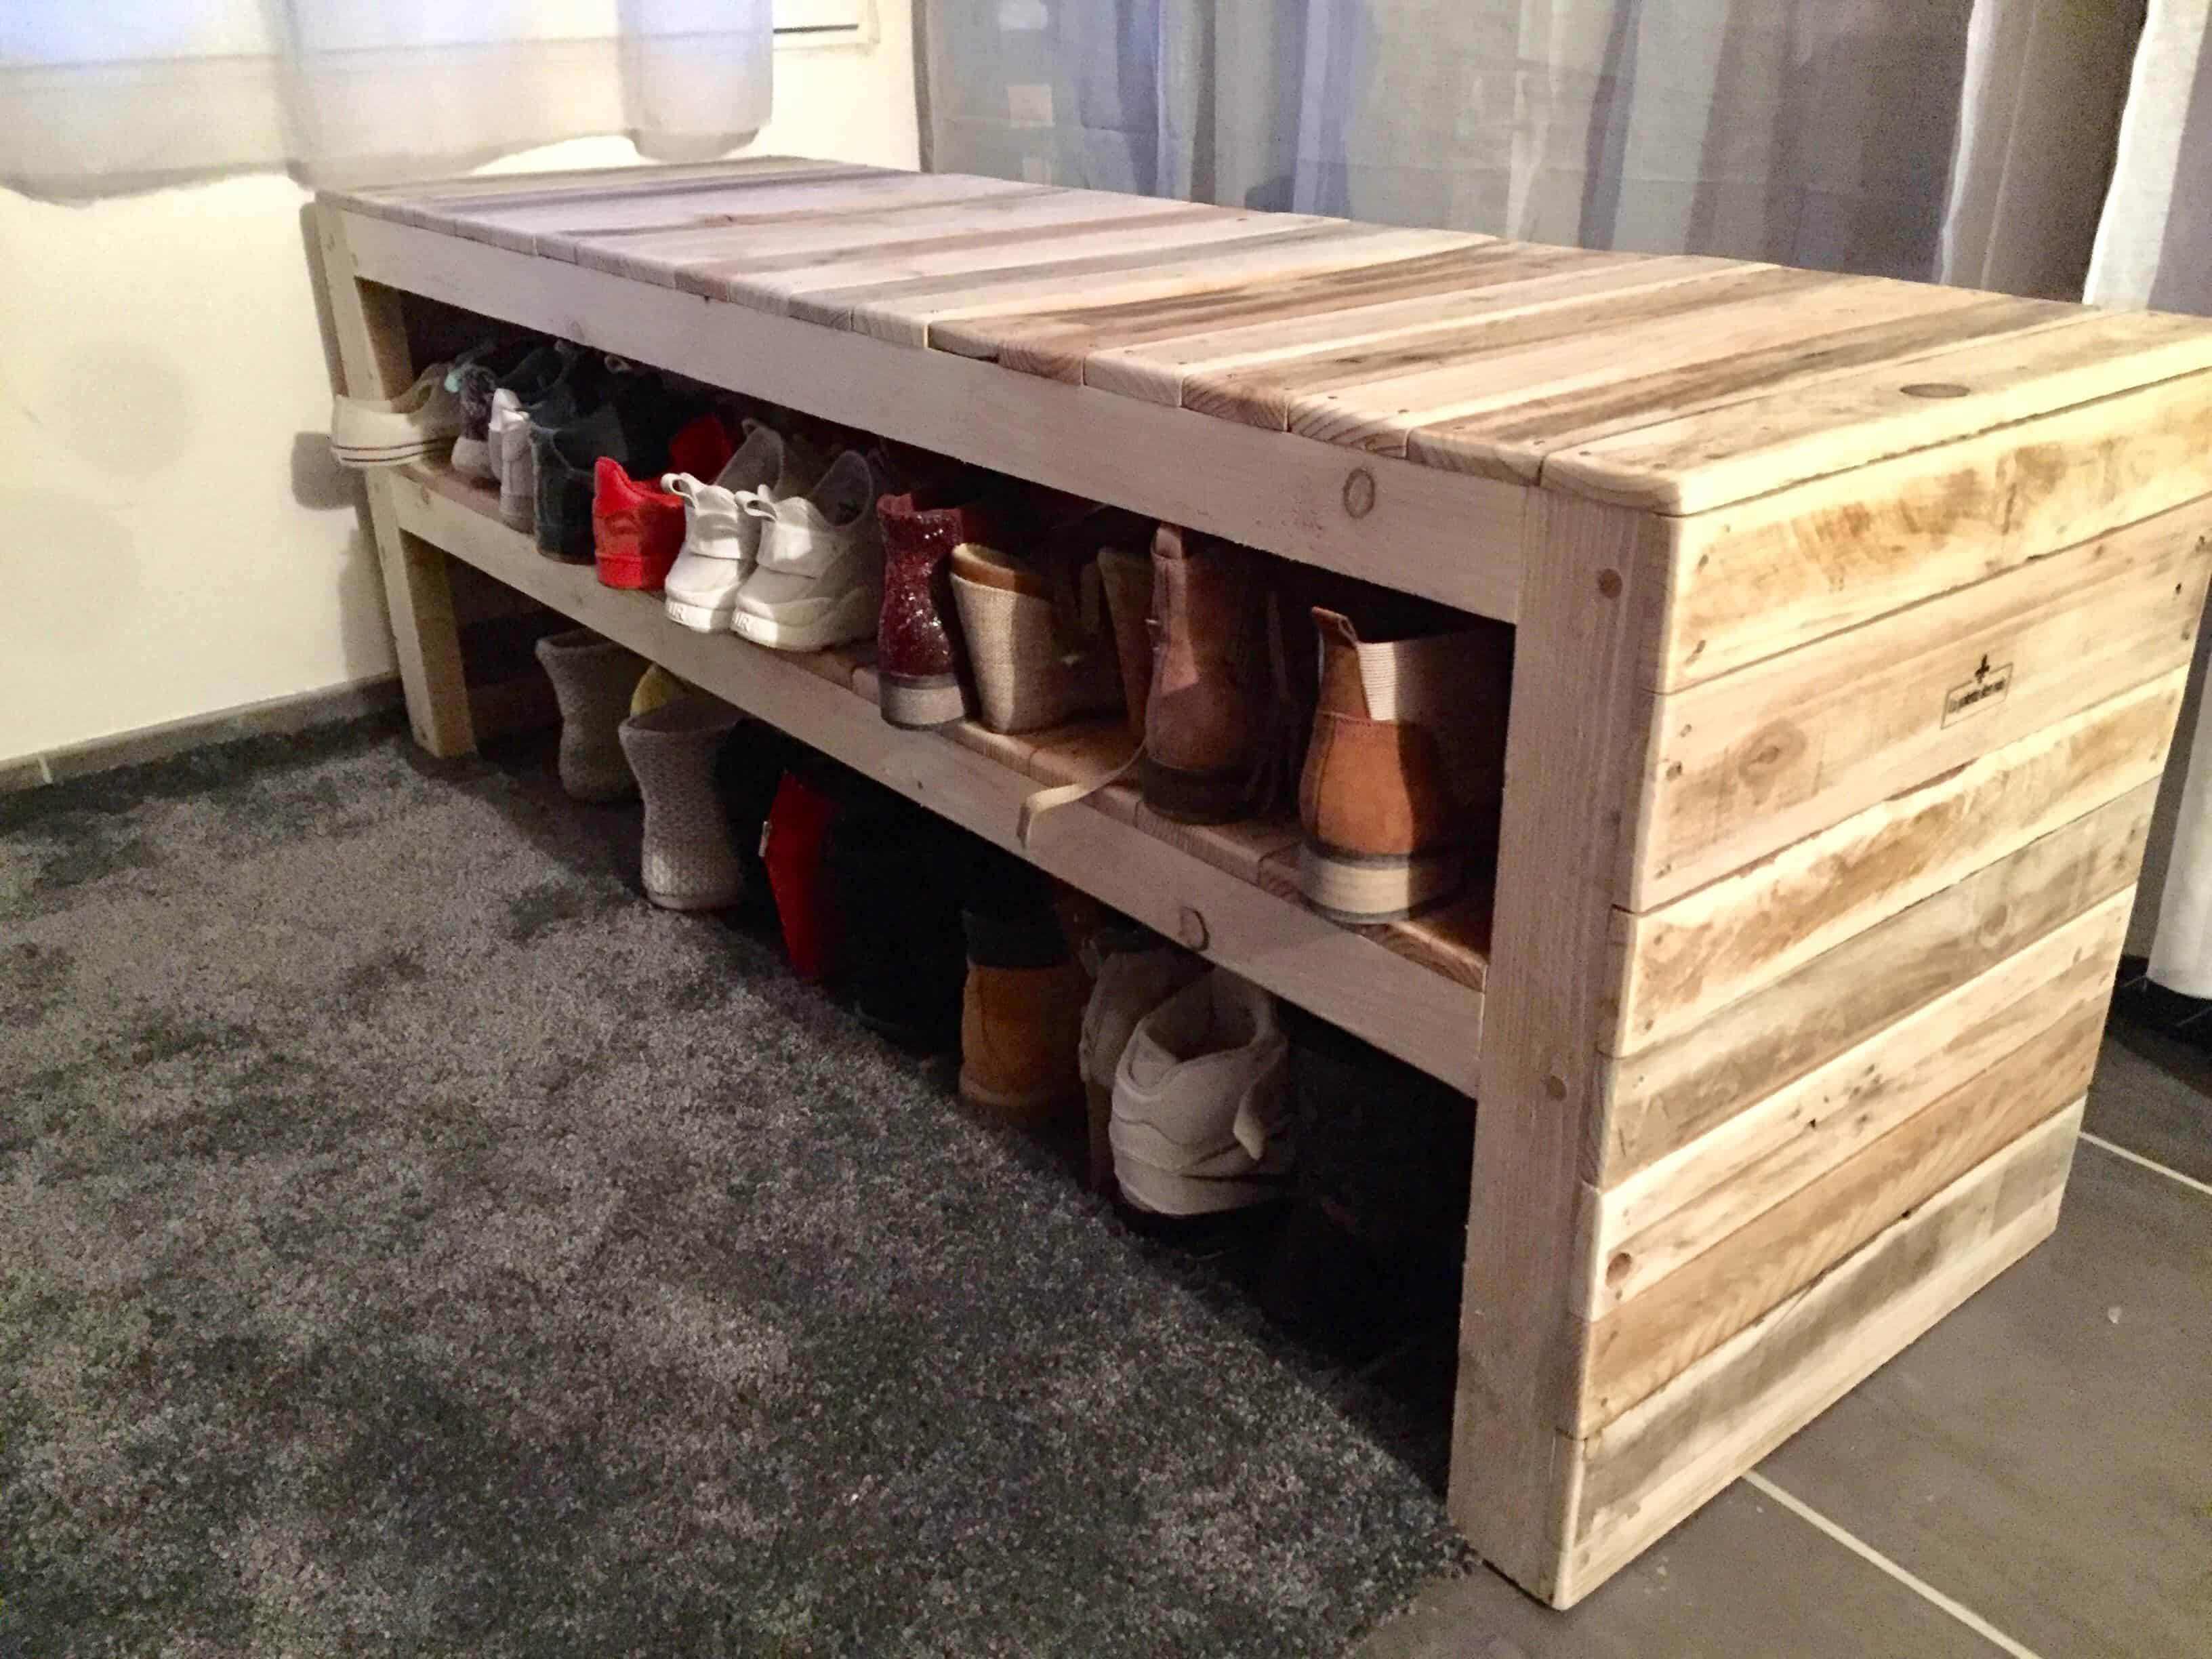 This Pallet Bench Has Two Shoe Storage Shelves! • 1001 Pallets